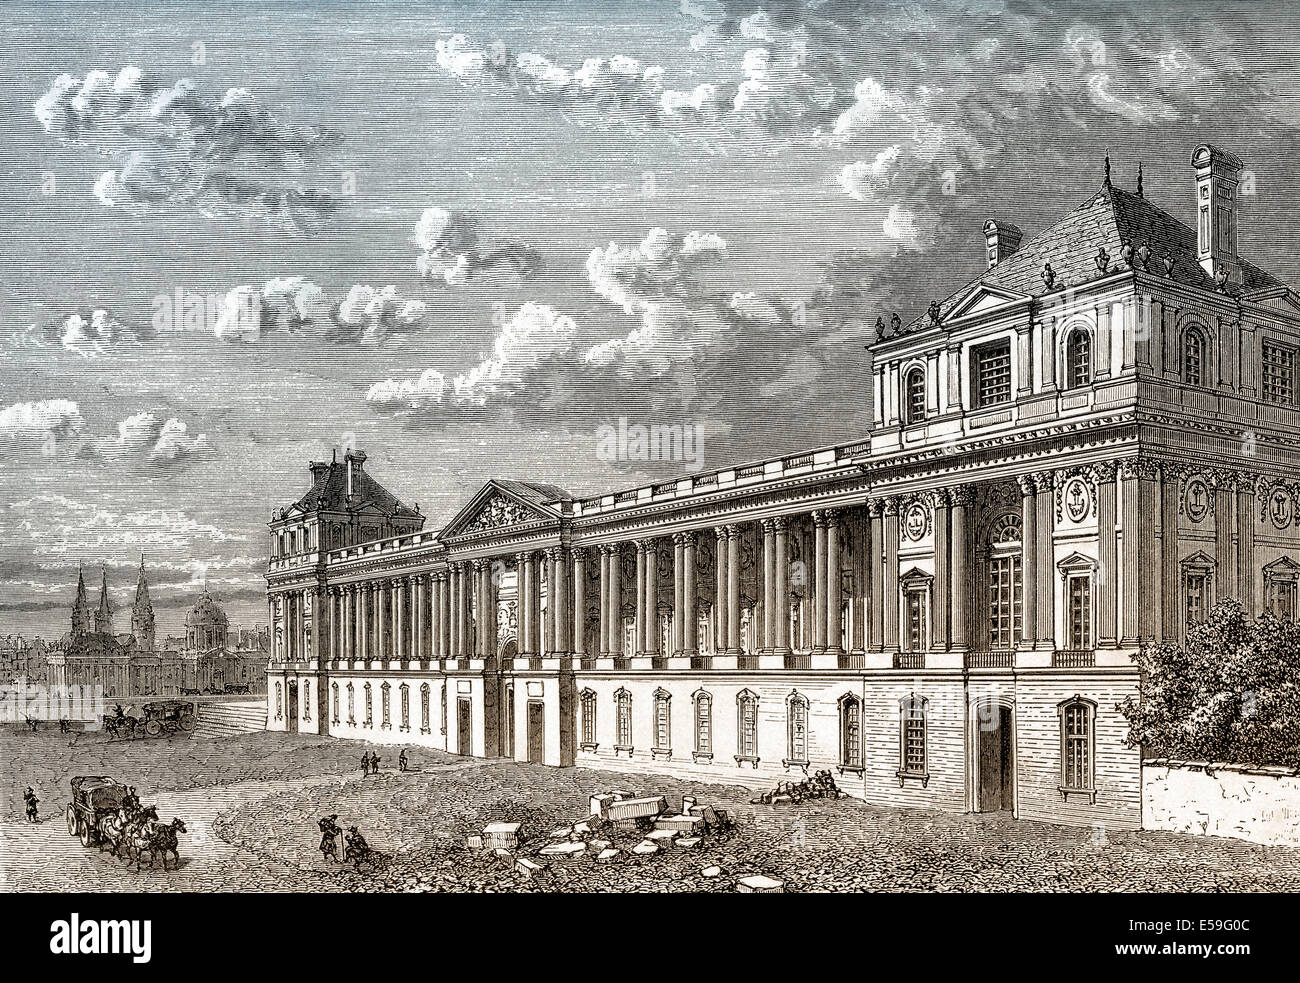 The Louvre Palace French Museum And Historic Monument Paris Stock Photo Alamy